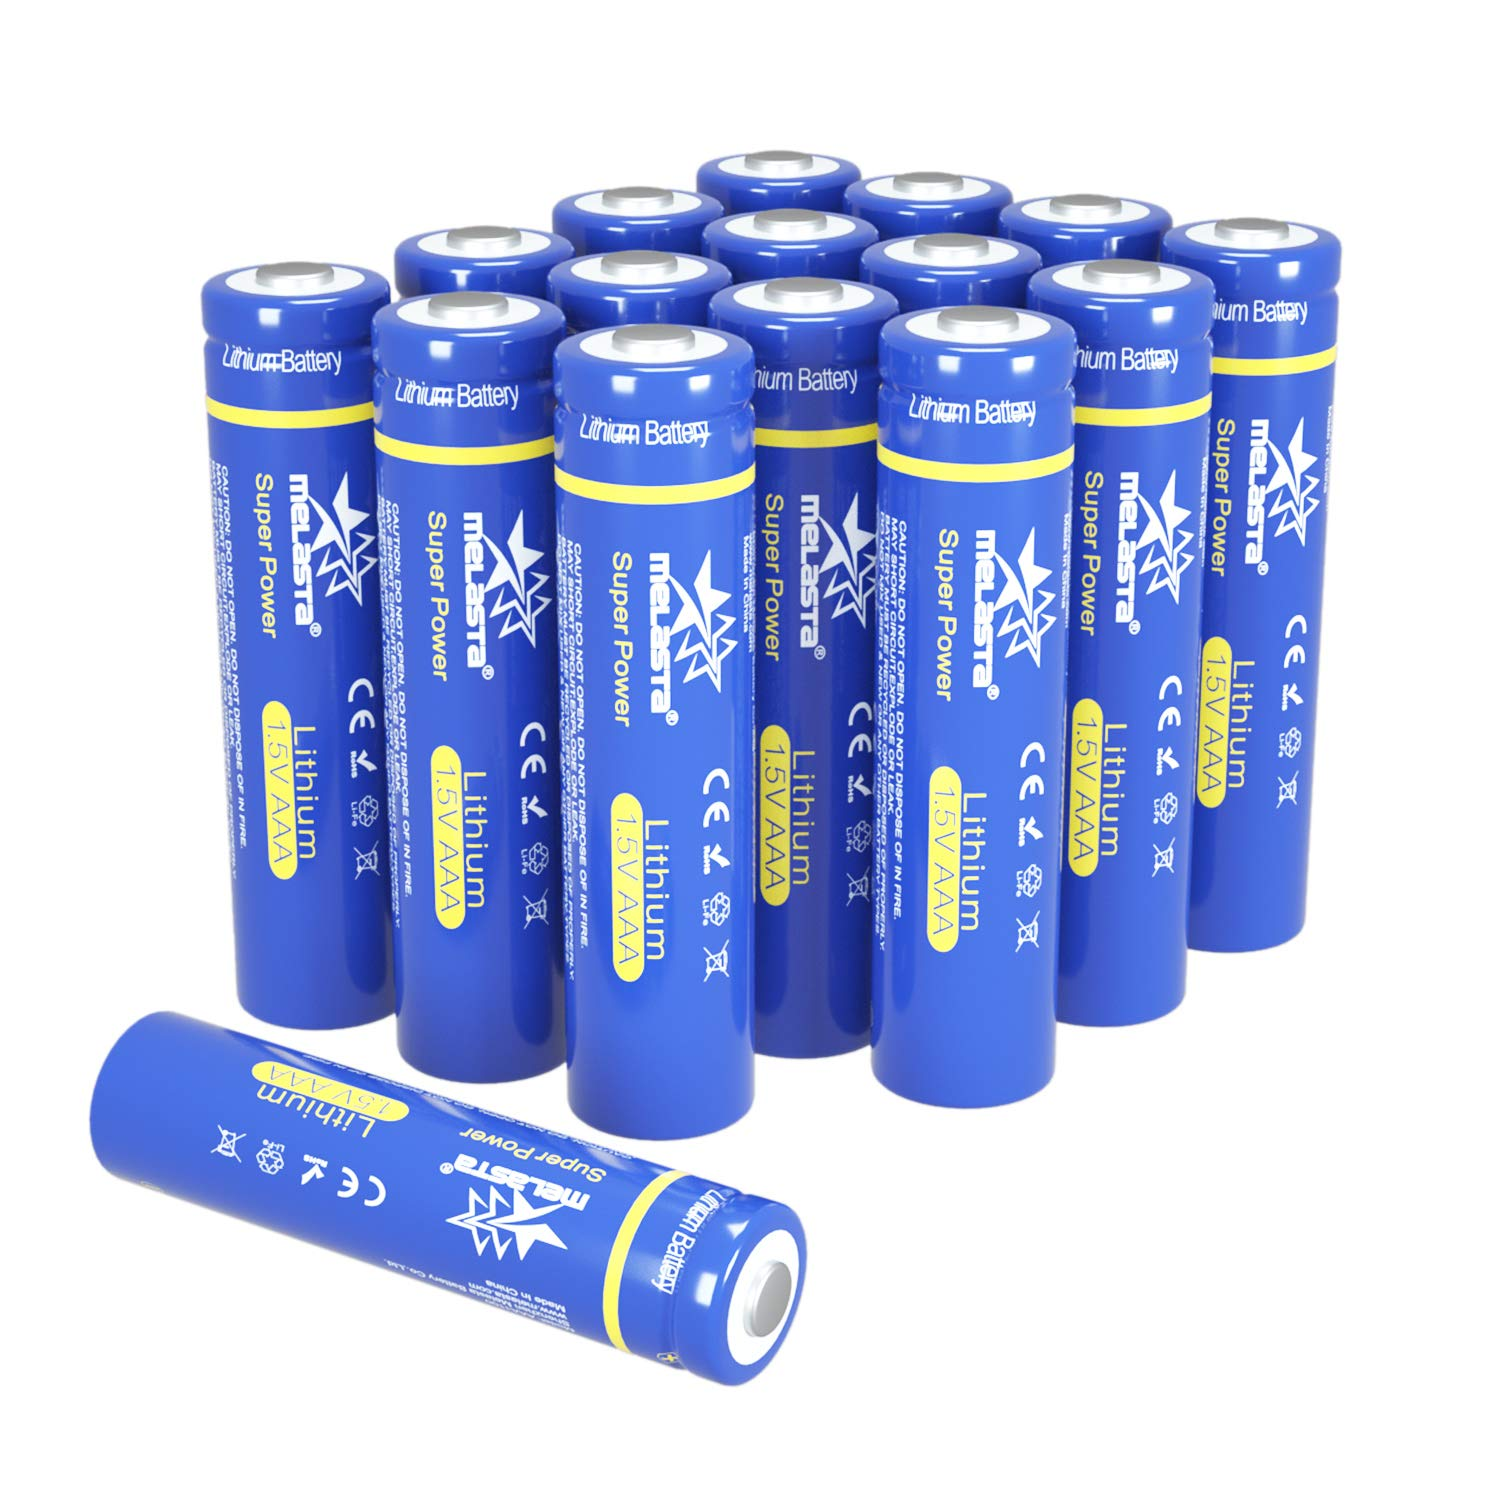 melasta AAA Lithium Batteries, 16-Pack 1.5V 1100mAh Long-lasing Triple A Battery Replacement for AAA Alkaline Batteries (Non-Rechargeable)